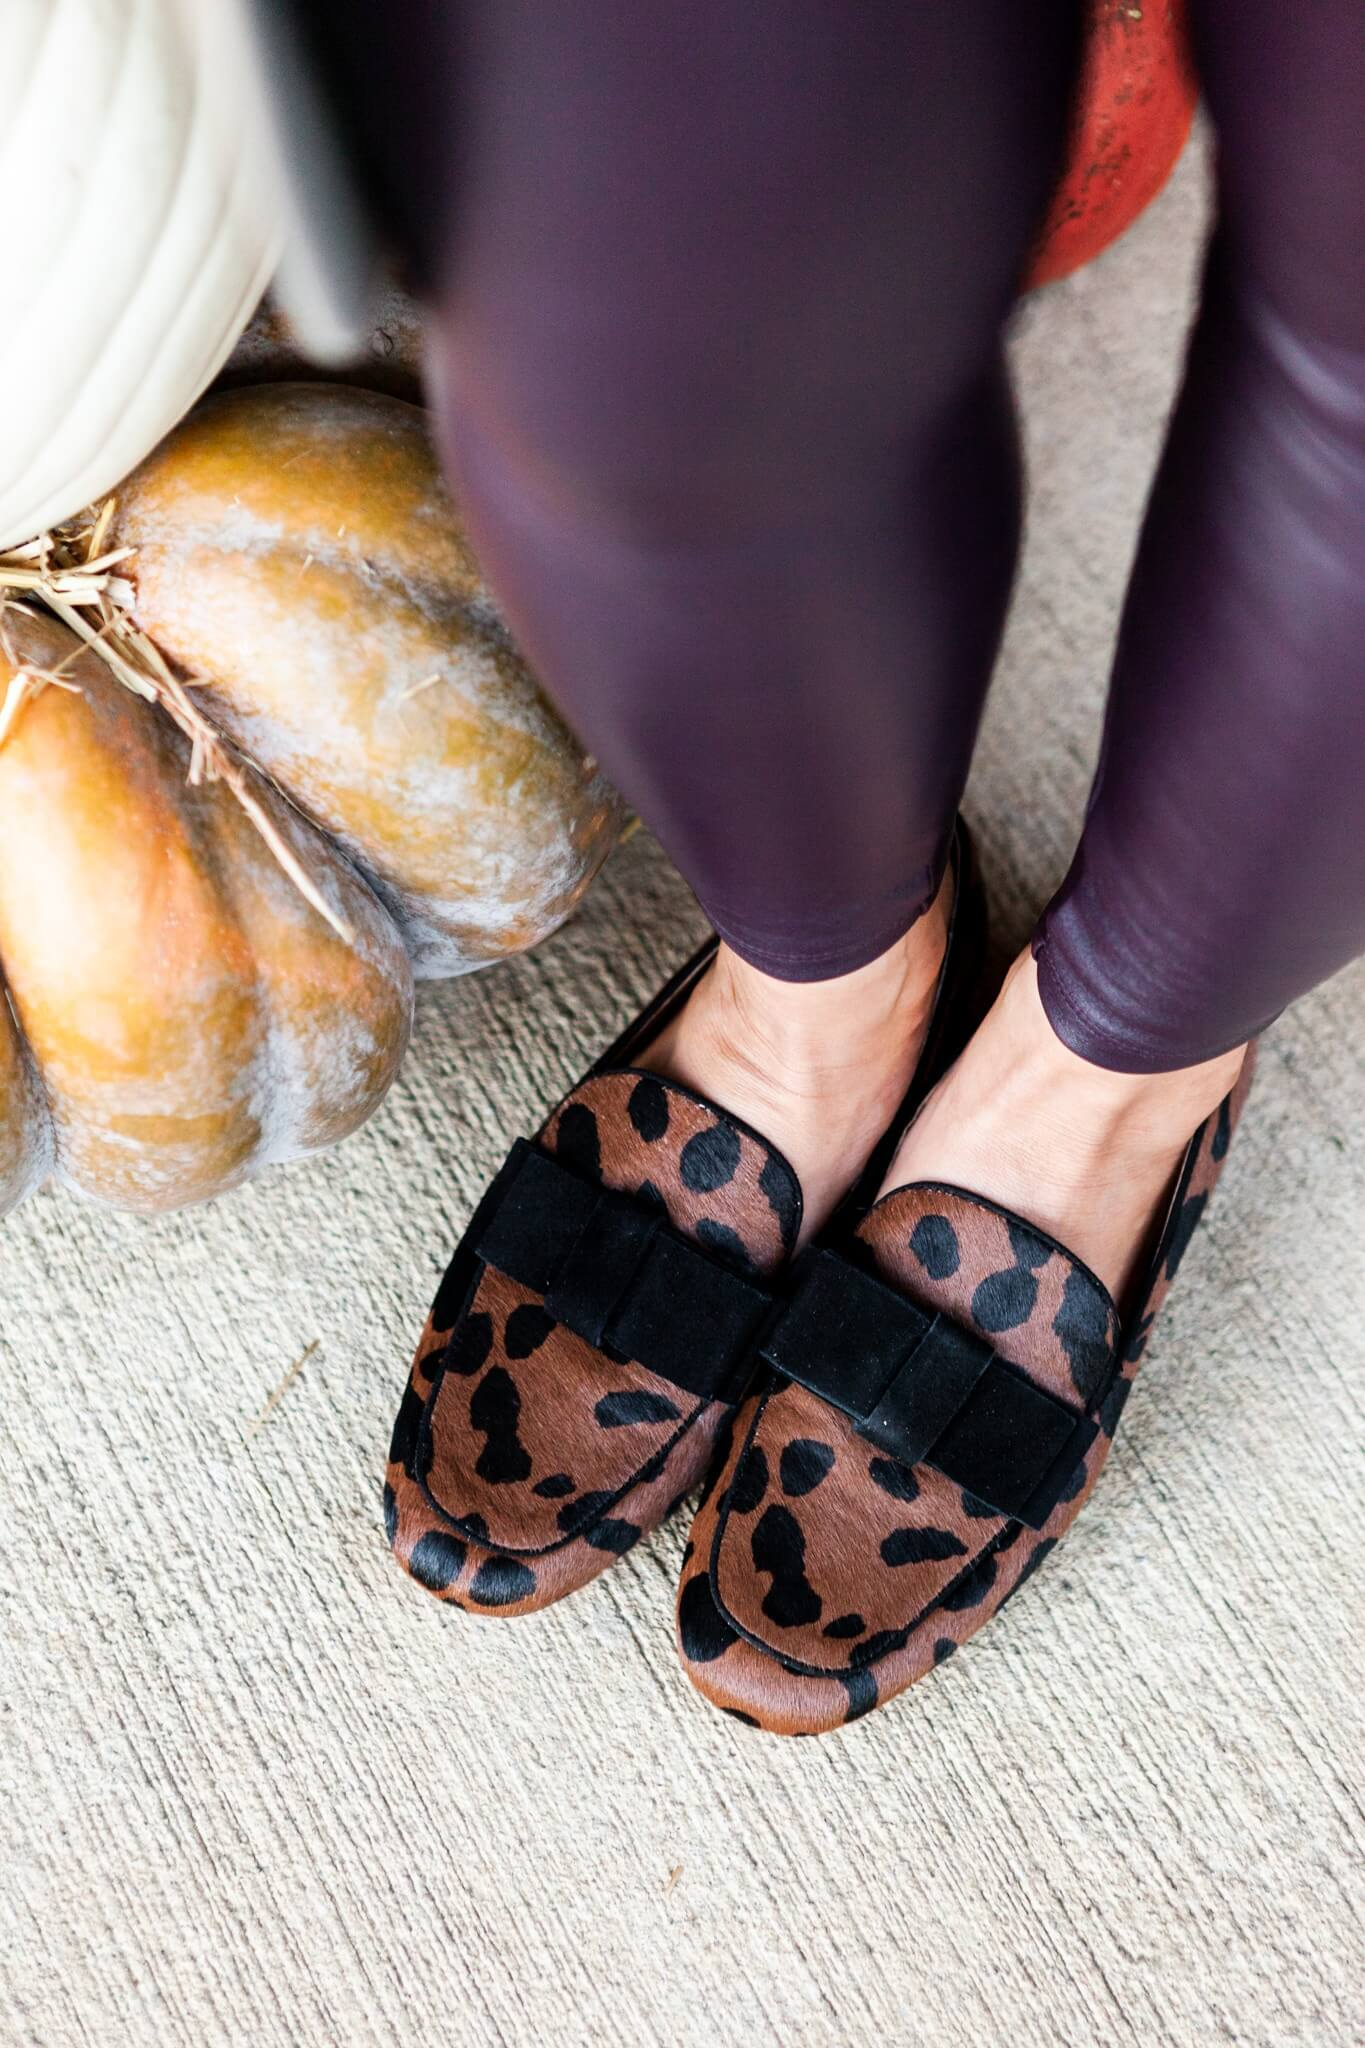 animal print shoes, animal print, leopard print shoes, what to wear for fall, fall styles, fall outfit, fall outfit inspiration, fall trends, fall lookbook, fall fashion outfits, fall lookbook favorites, fall wardrobe essentials